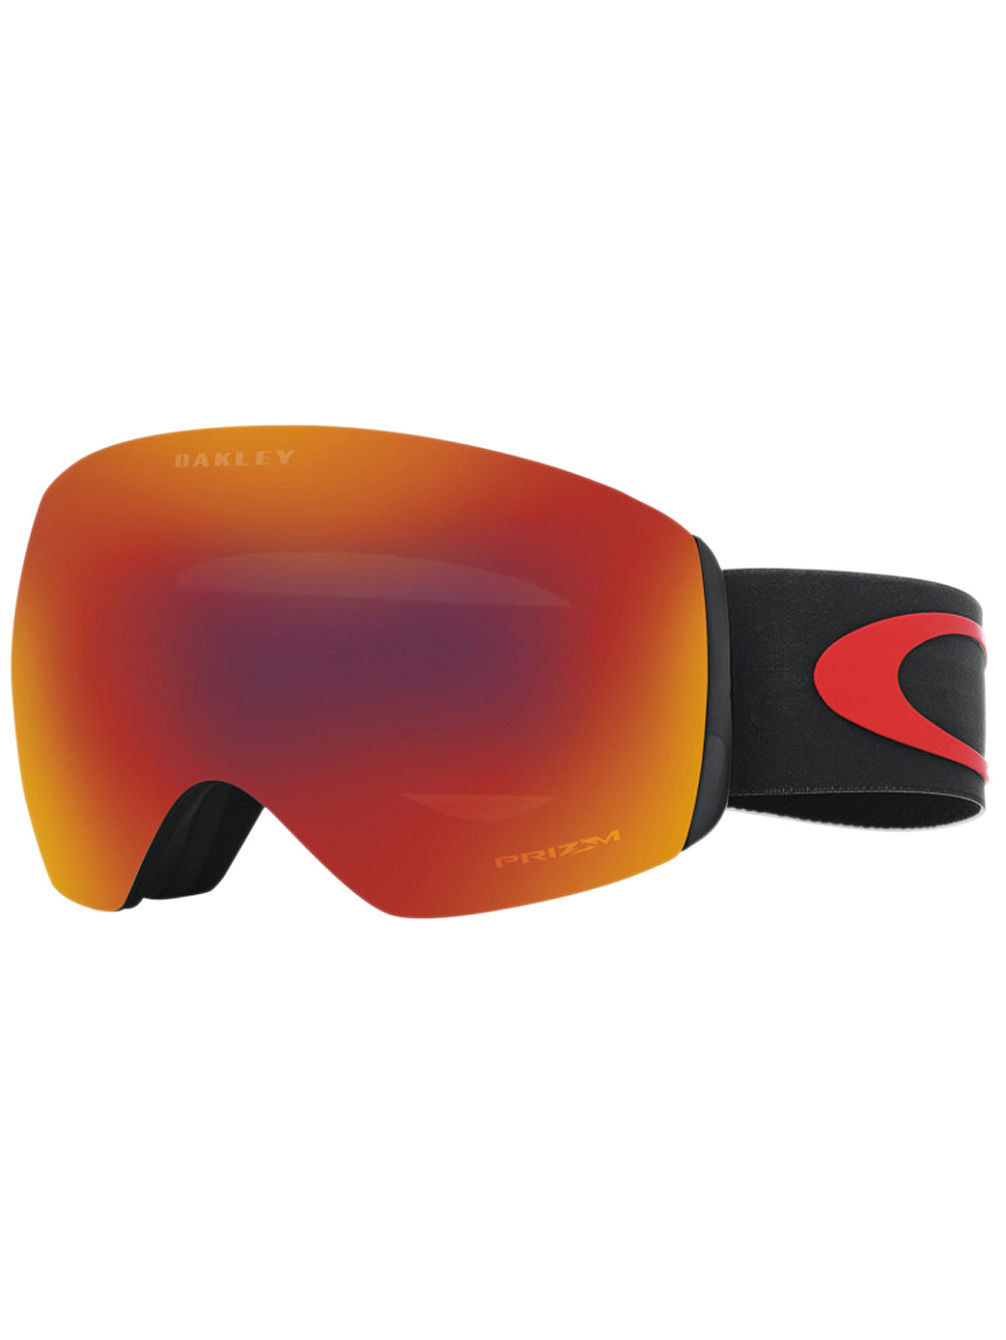 oakley-flight-deck-seth-sig-valley-of-death